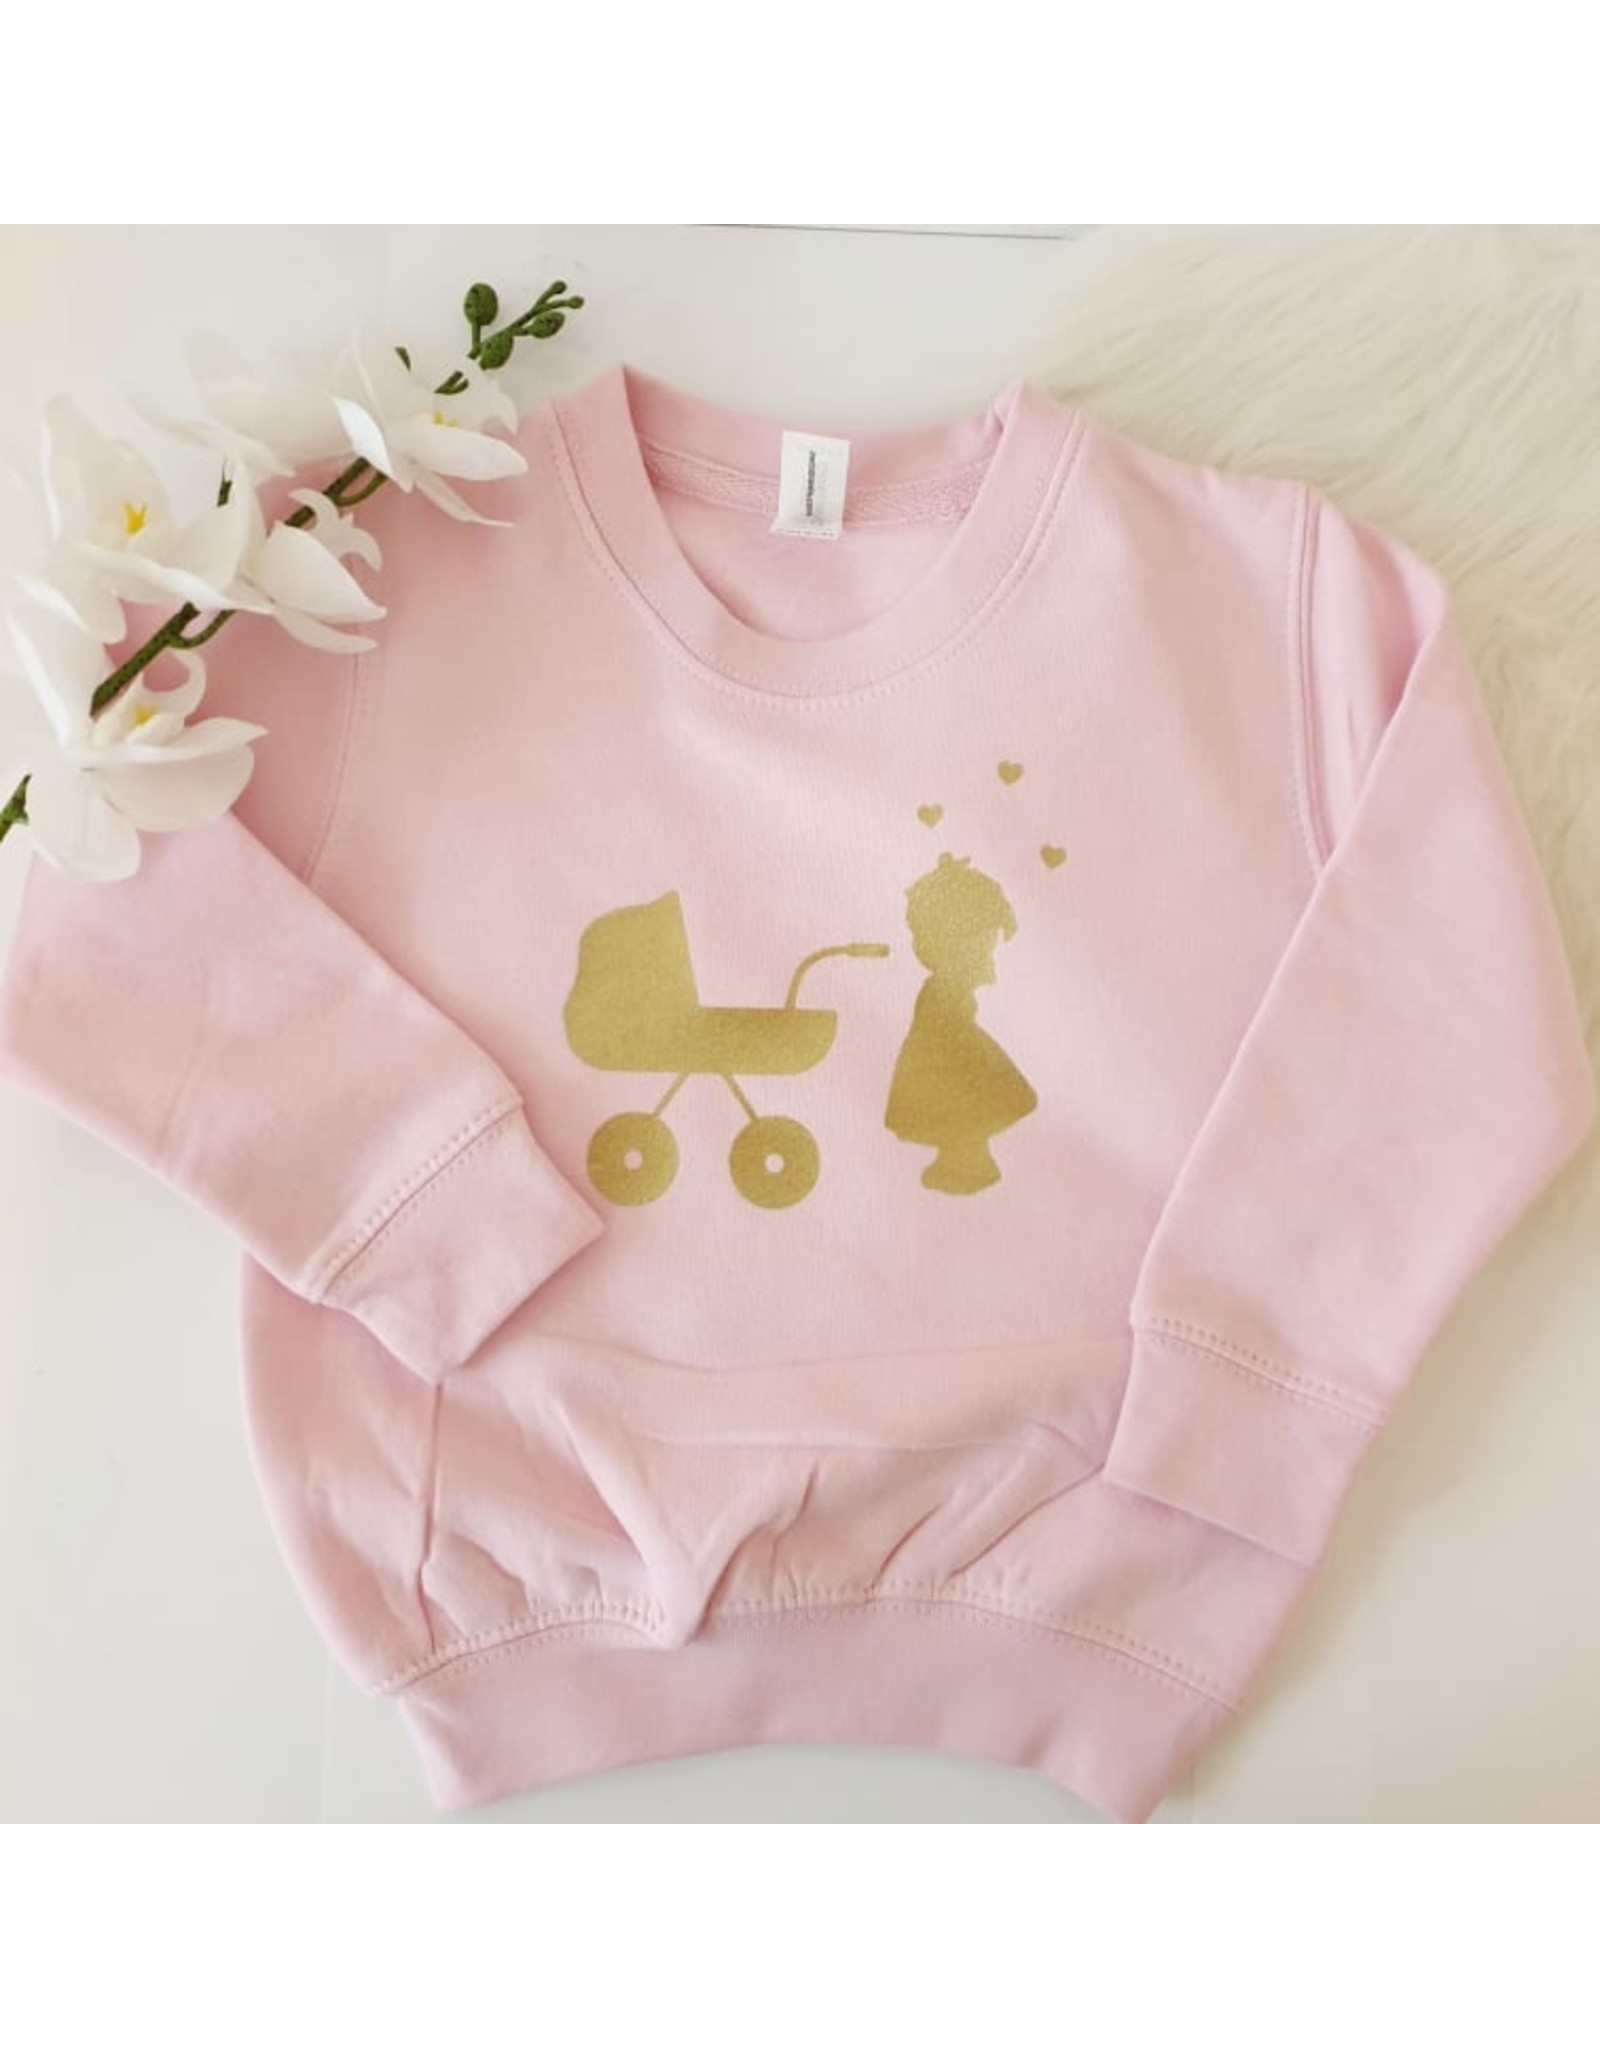 Momof3 Sweater: Promoted